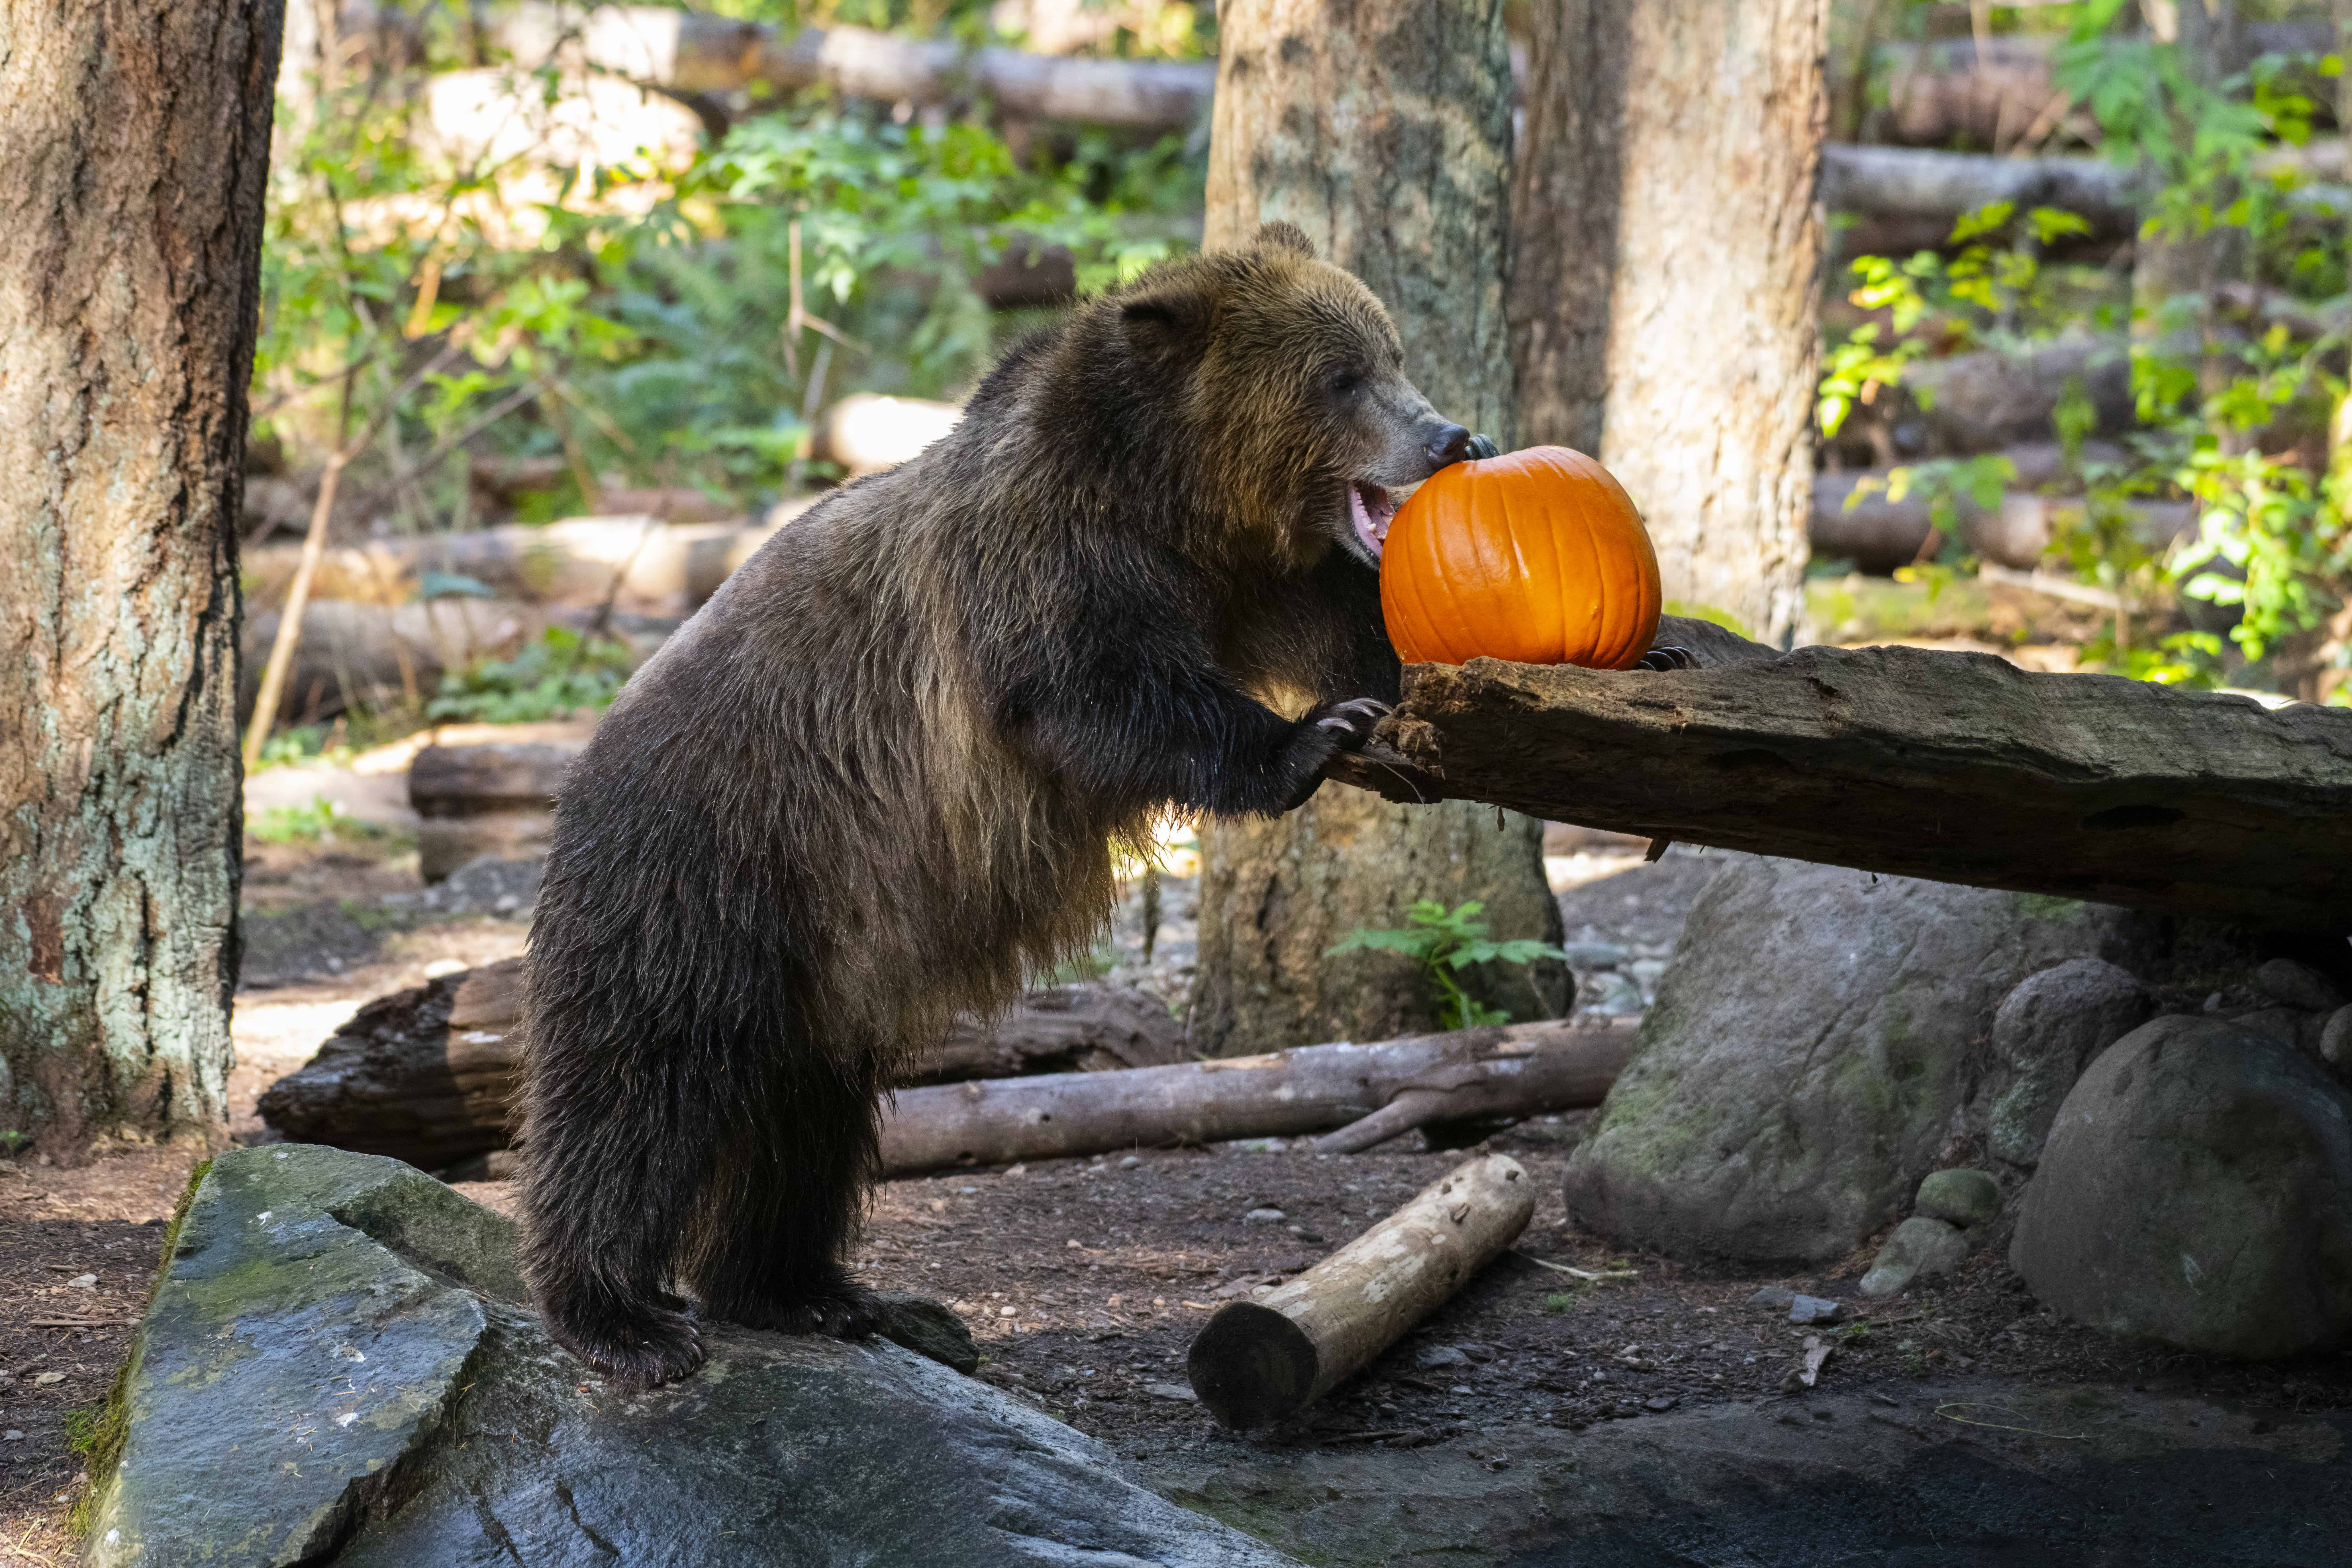 Grizzly Bear and Pumpkin